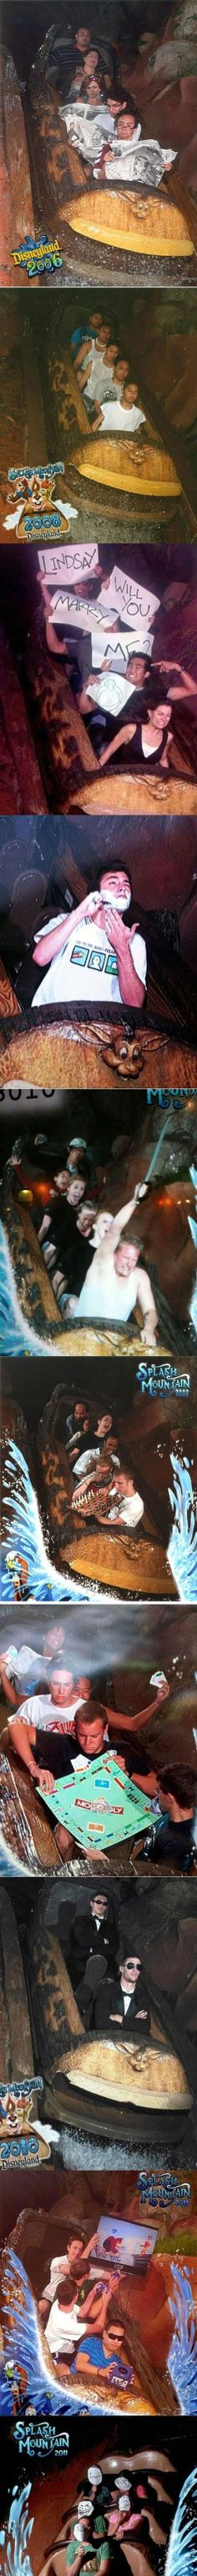 funny Disneyland Splash Mountain clever photos